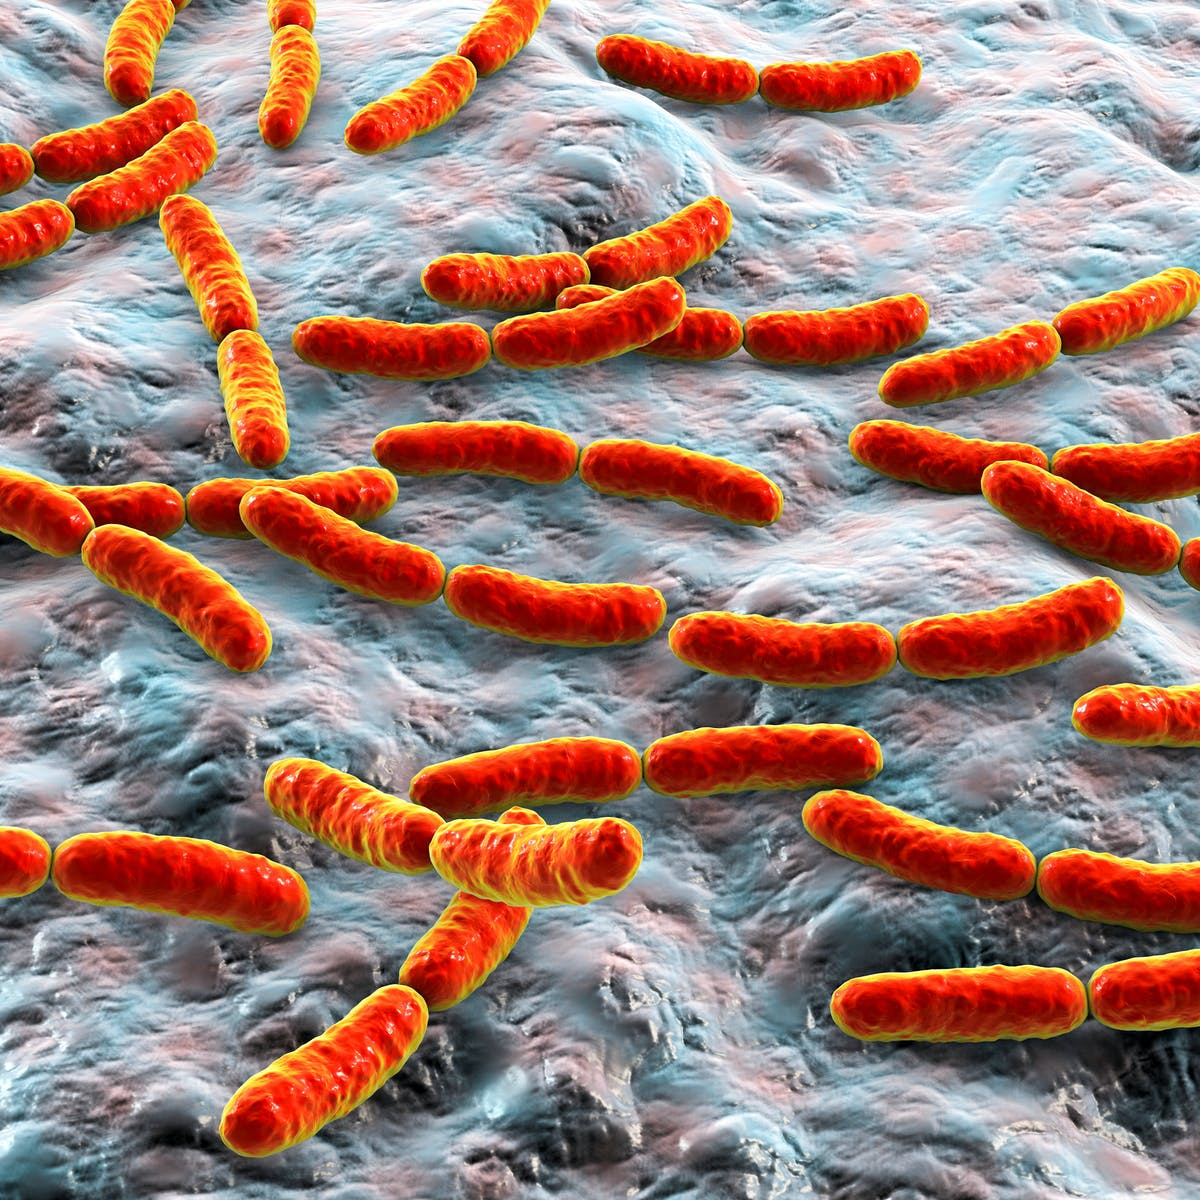 Could your gut microbes hinder your cancer treatment? A new first-in